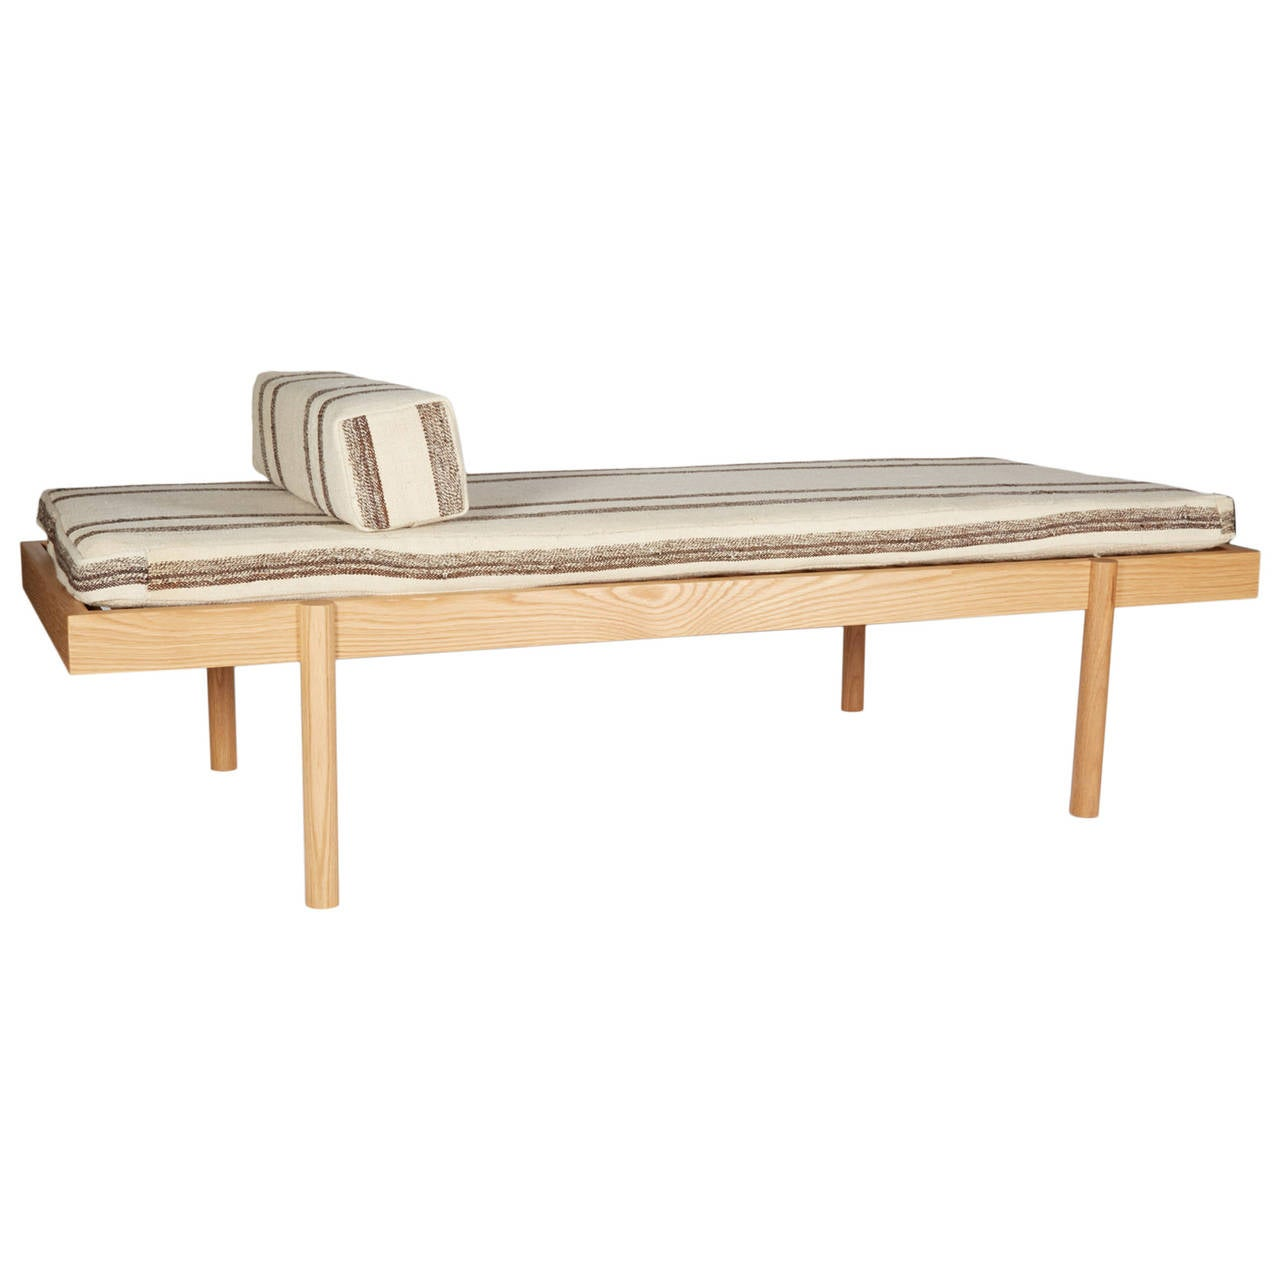 WC2 Daybed by ASH NYC with Limited Woven Accents Kilim Upholstery, One of Five 1